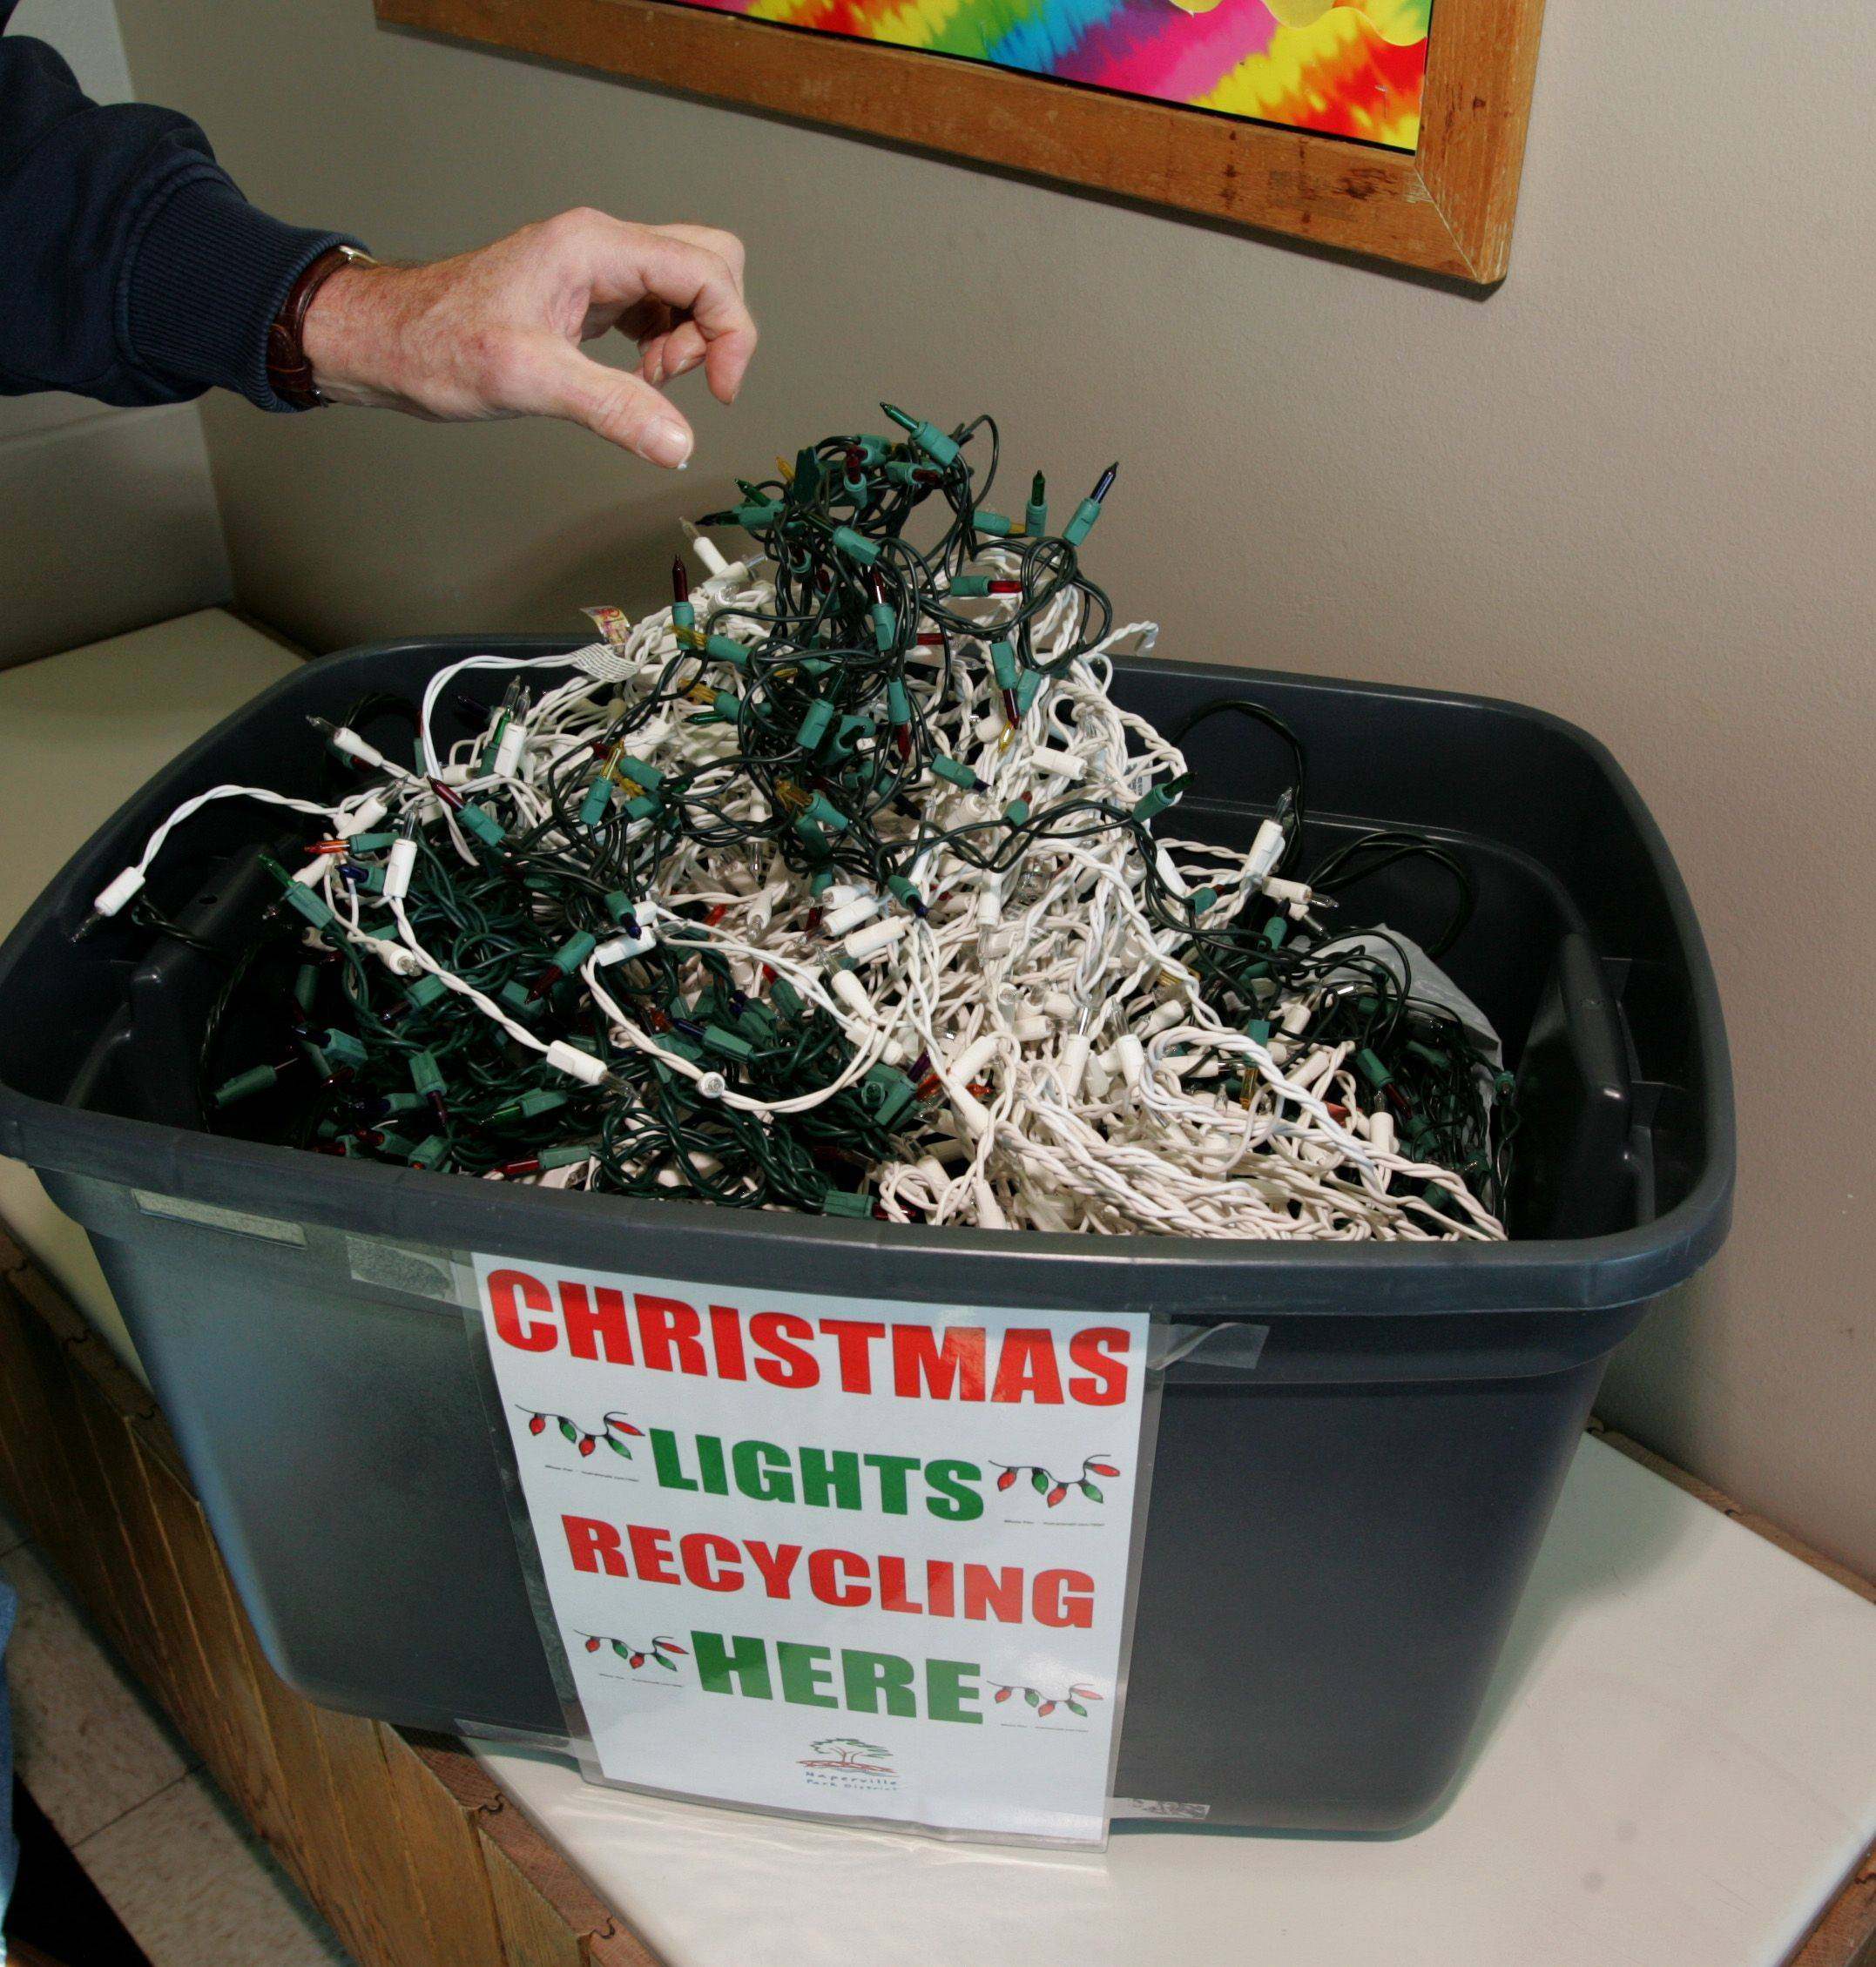 Don't throw your old Christmas tree lights in the trash. There are many places in Kane County where you can recycle them.